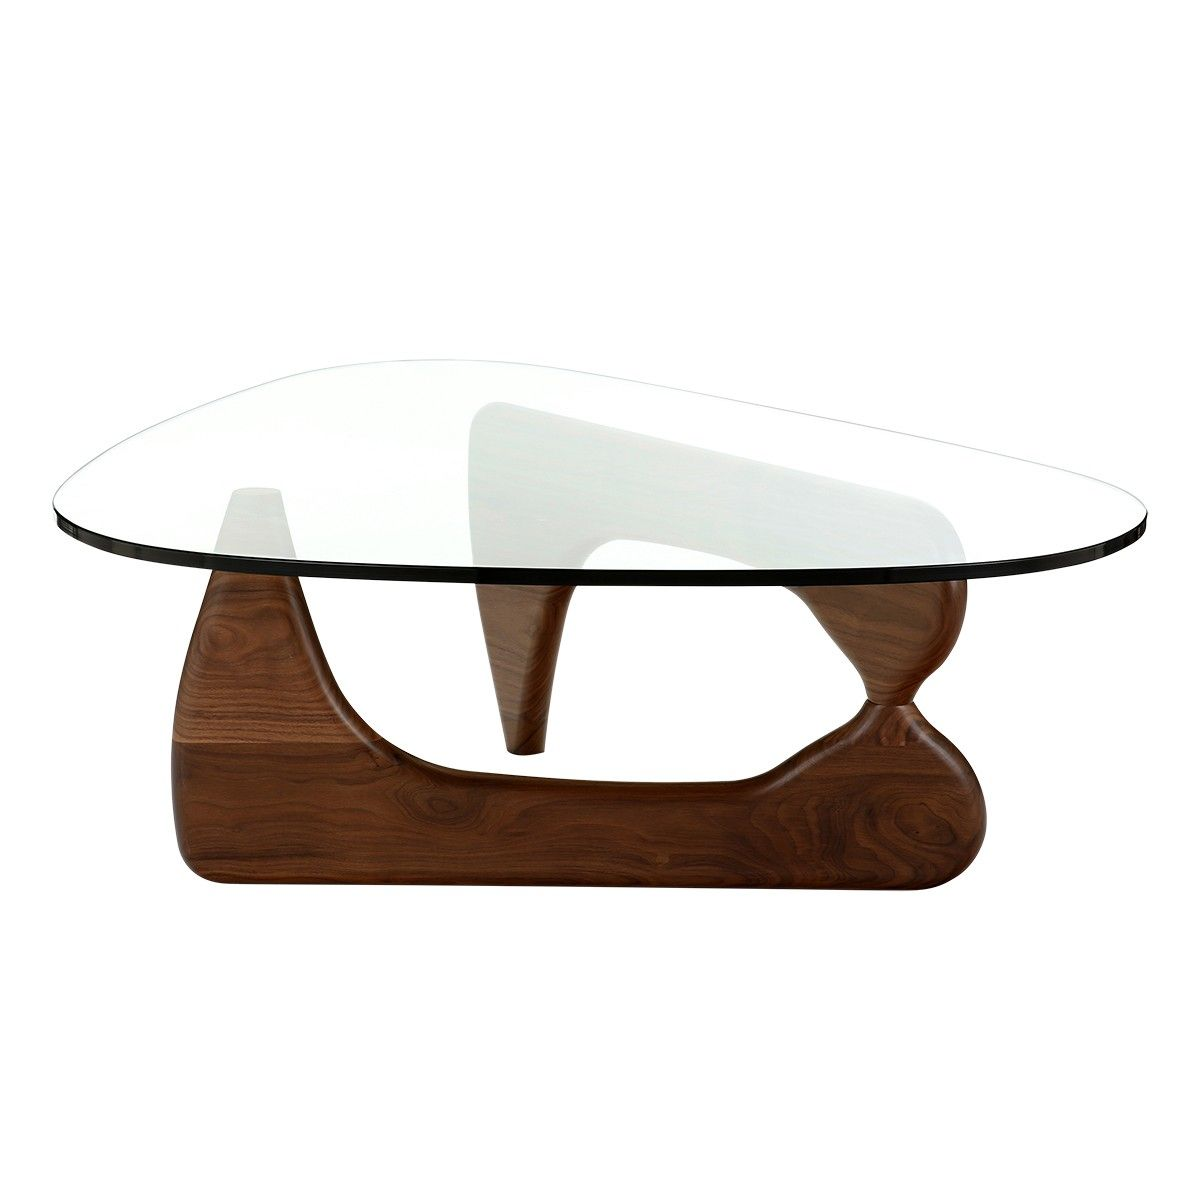 Noguchi Coffee Table Replica Walnut Nick Scali Online Indoors